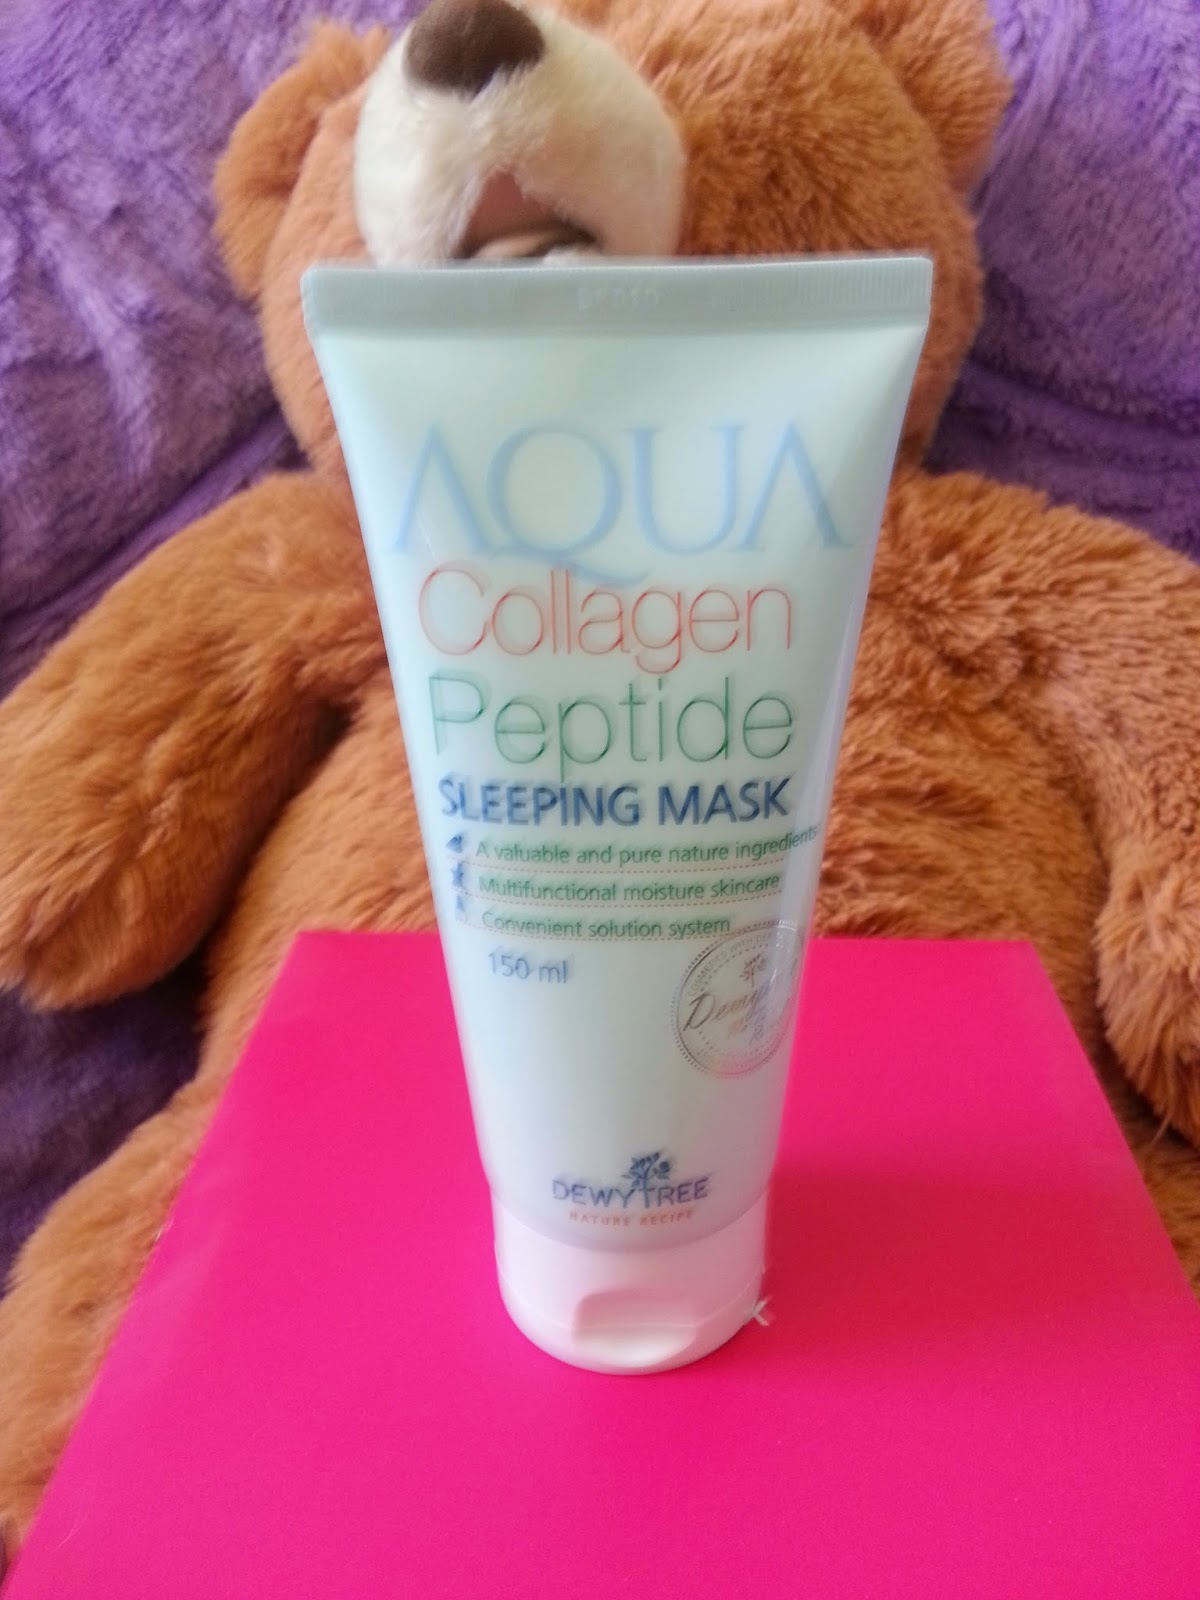 Dewytree Aqua Collagen Peptide Sleep Mask